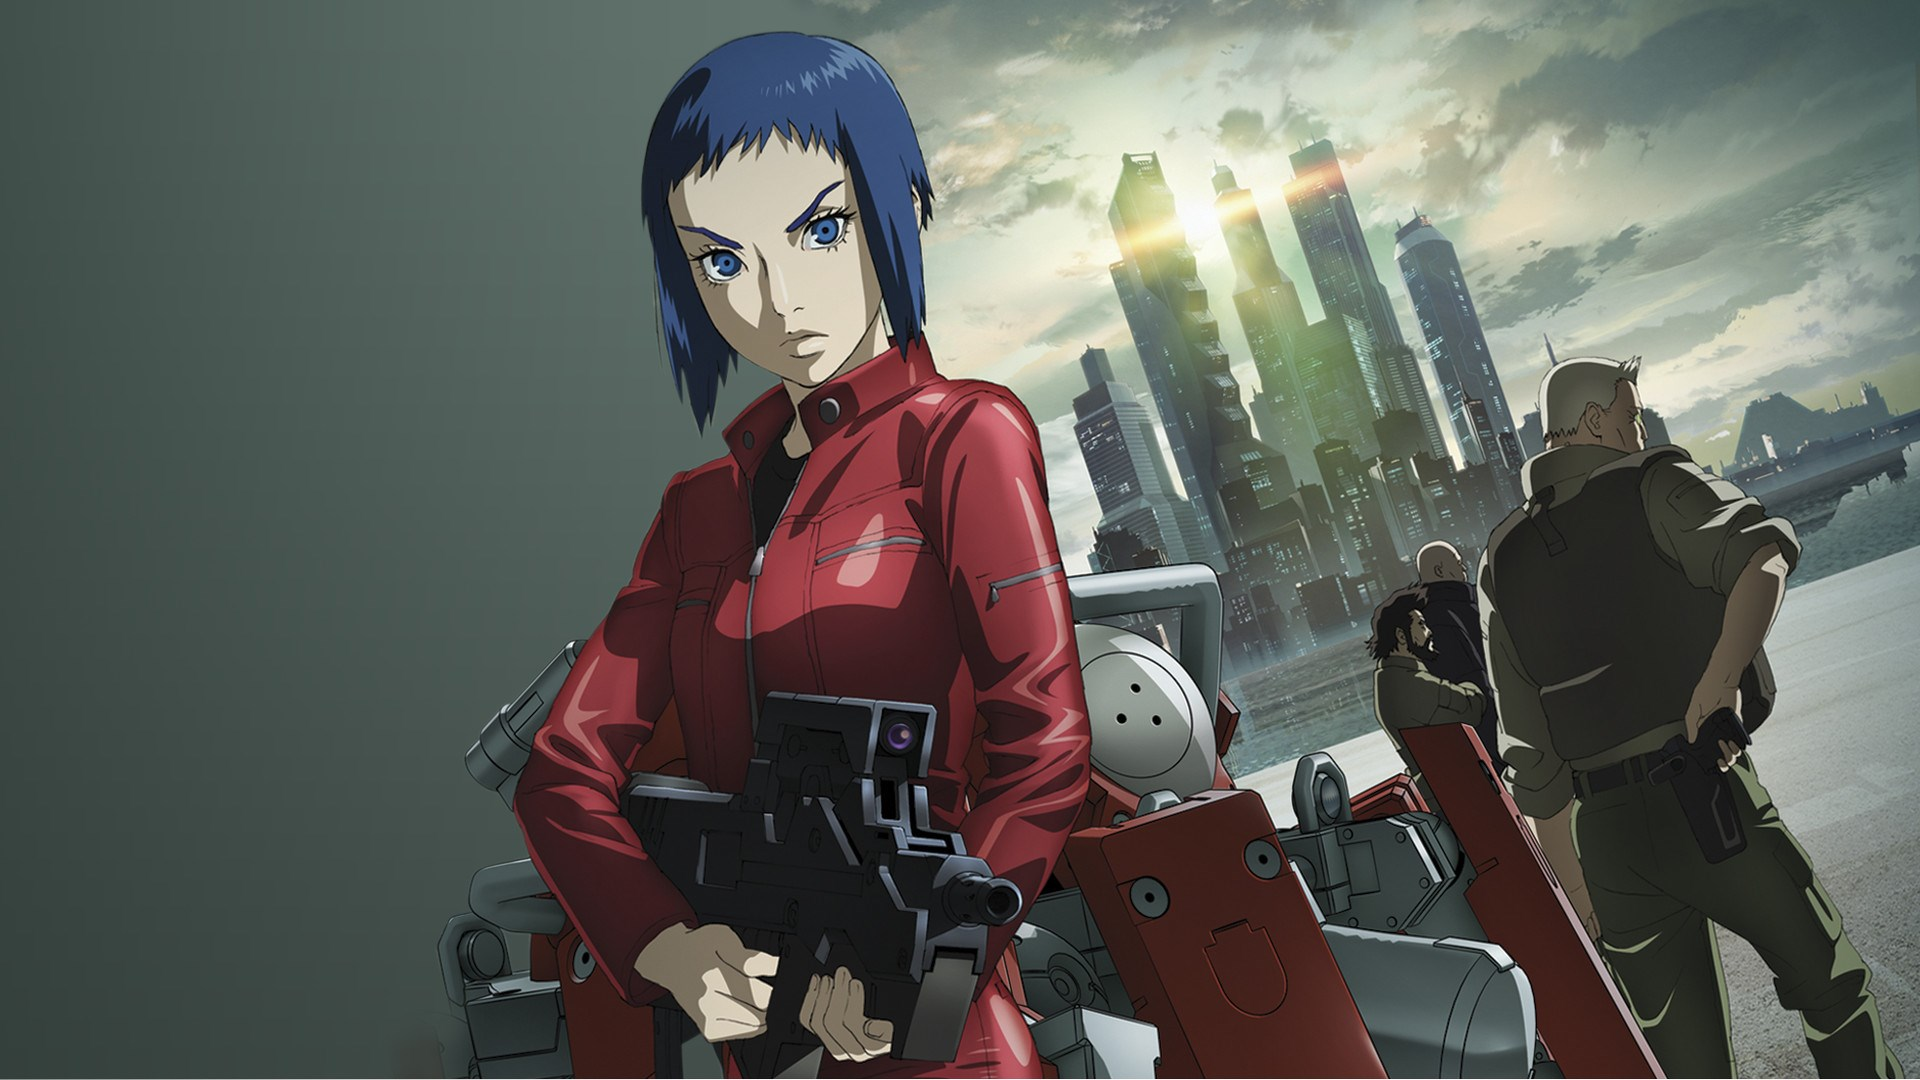 Major Motoko Kusanagi in Ghost in the Shell: Arise (2013-2014)